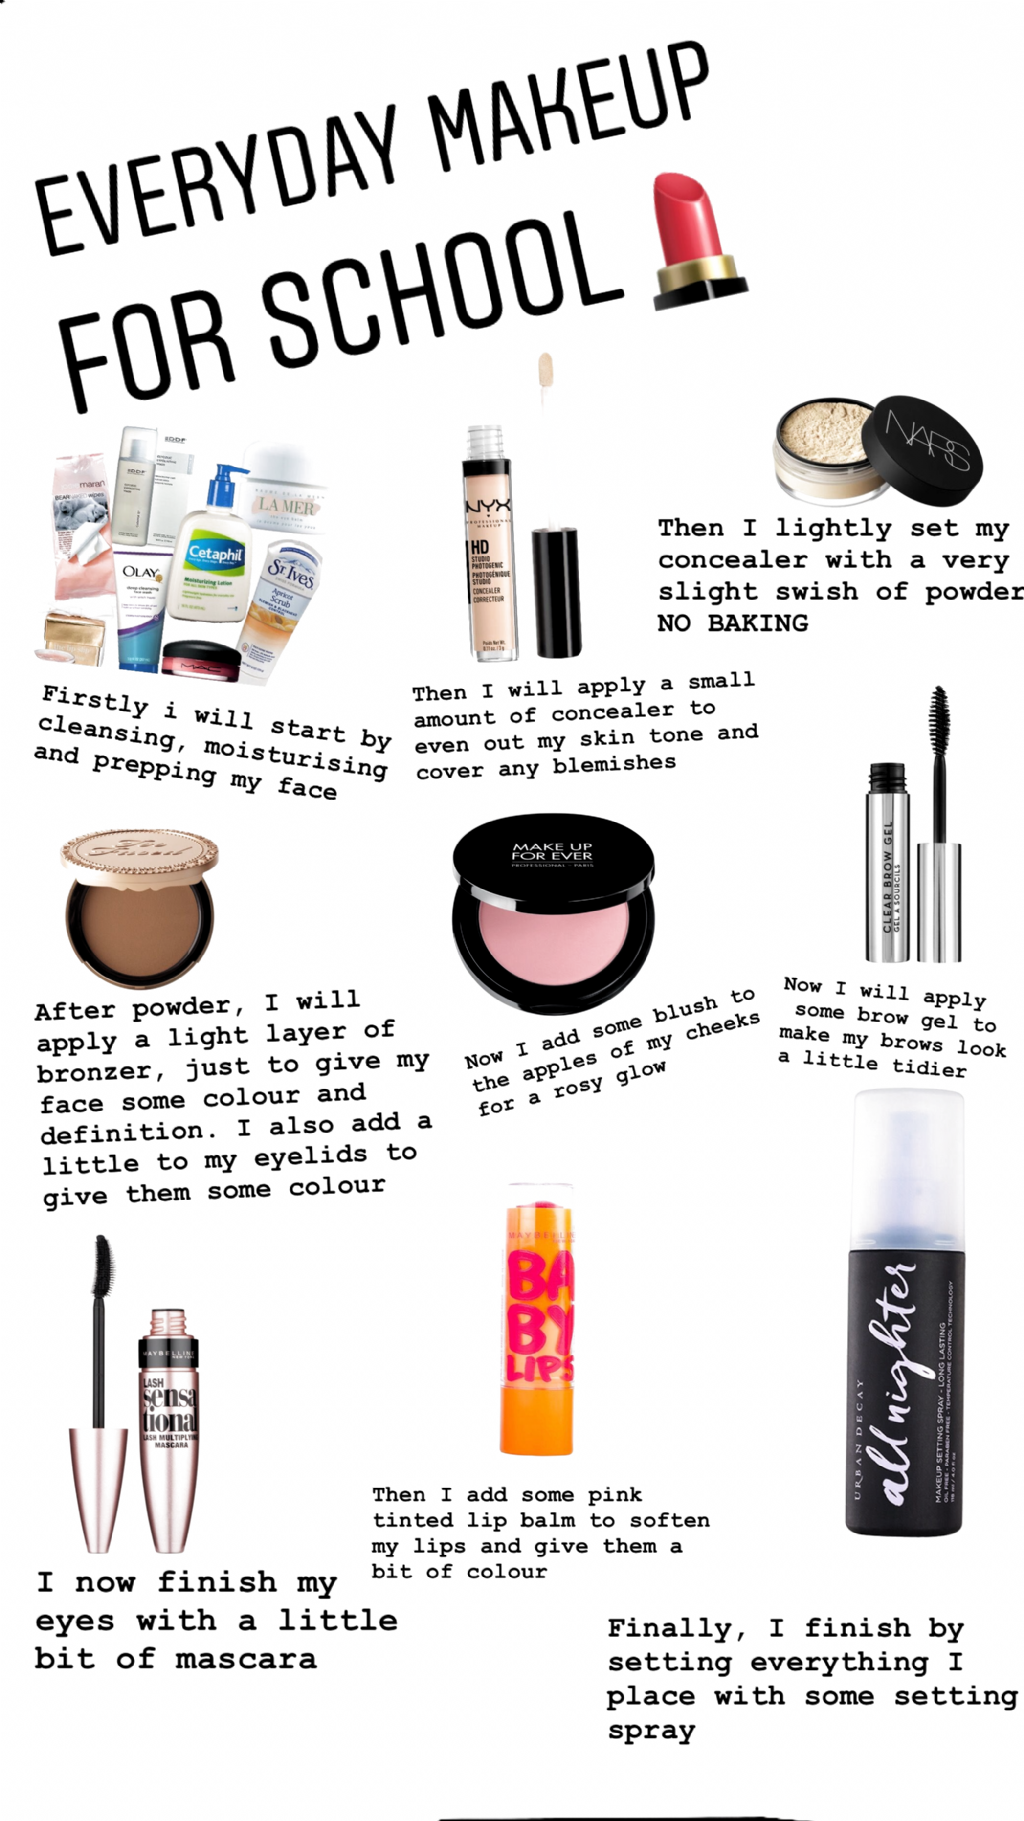 Pin on everyday makeup